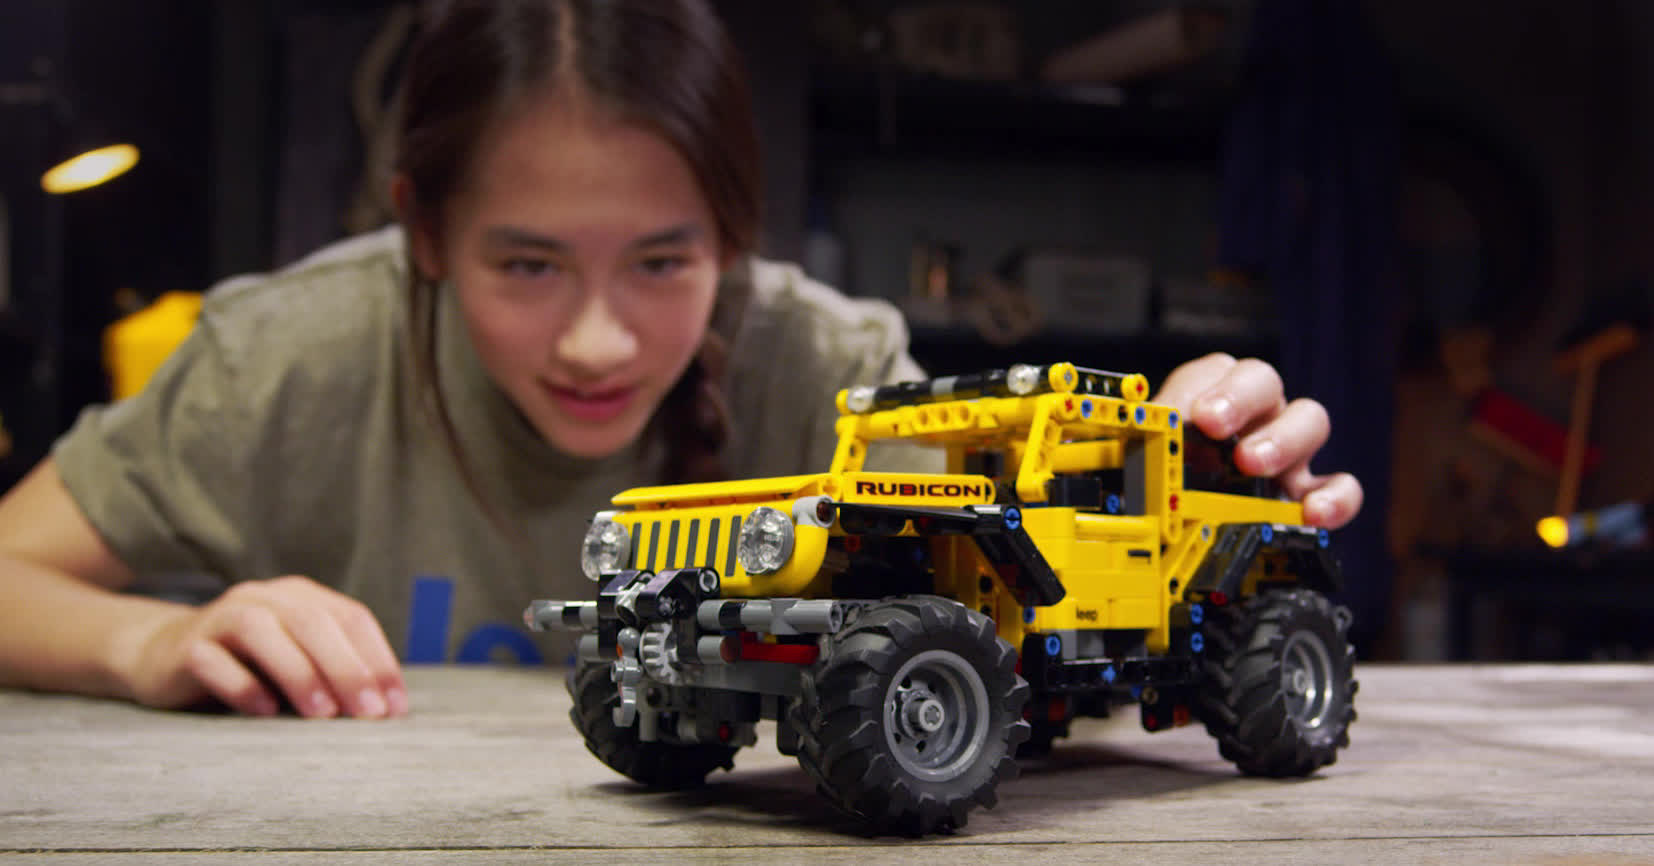 Lego's latest addition to the Technic series is a Jeep Wrangler with articulating suspension and a working winch